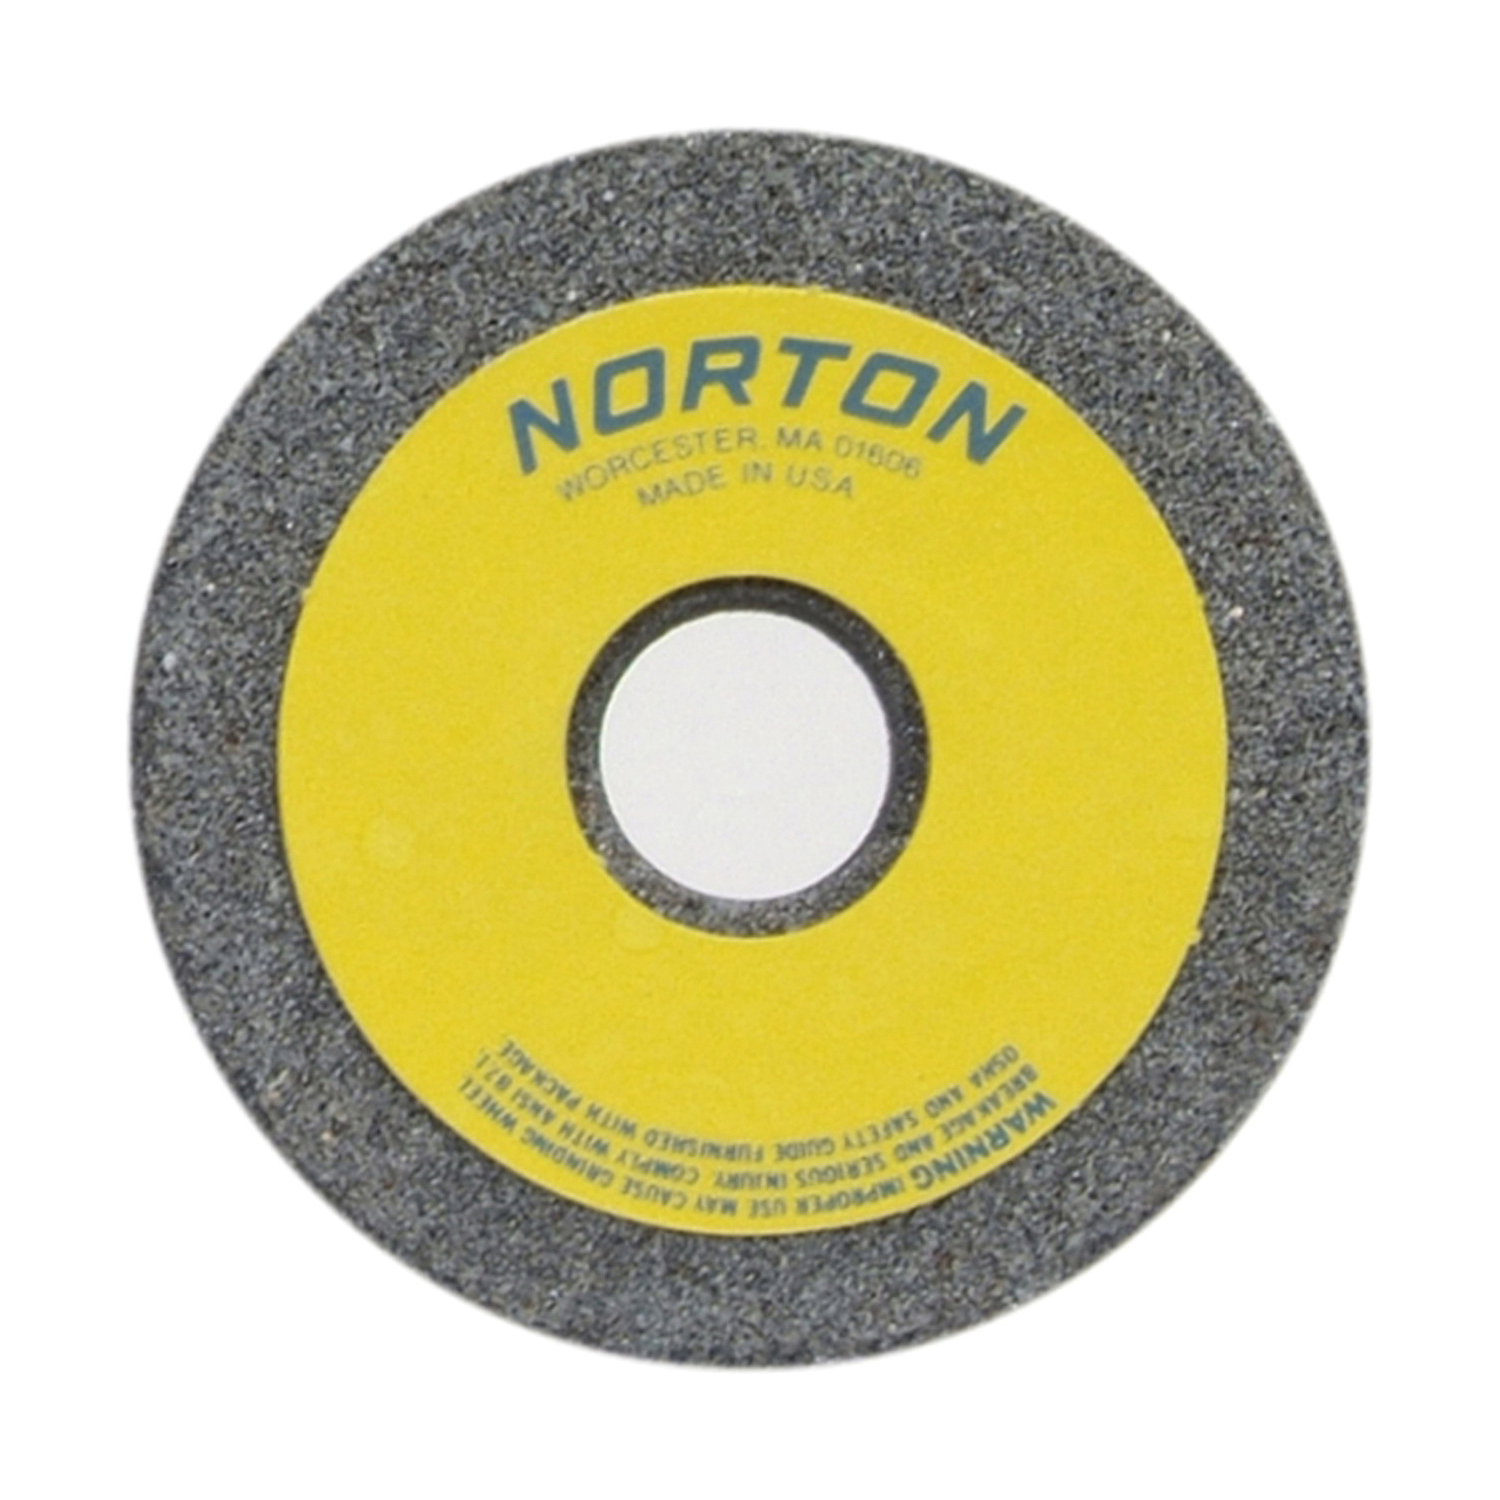 Norton® 66243529339 37C Toolroom Wheel, 3-1/2 in Dia x 1-1/2 in THK, 7/8 in Center Hole, 24 Grit, Silicon Carbide Abrasive